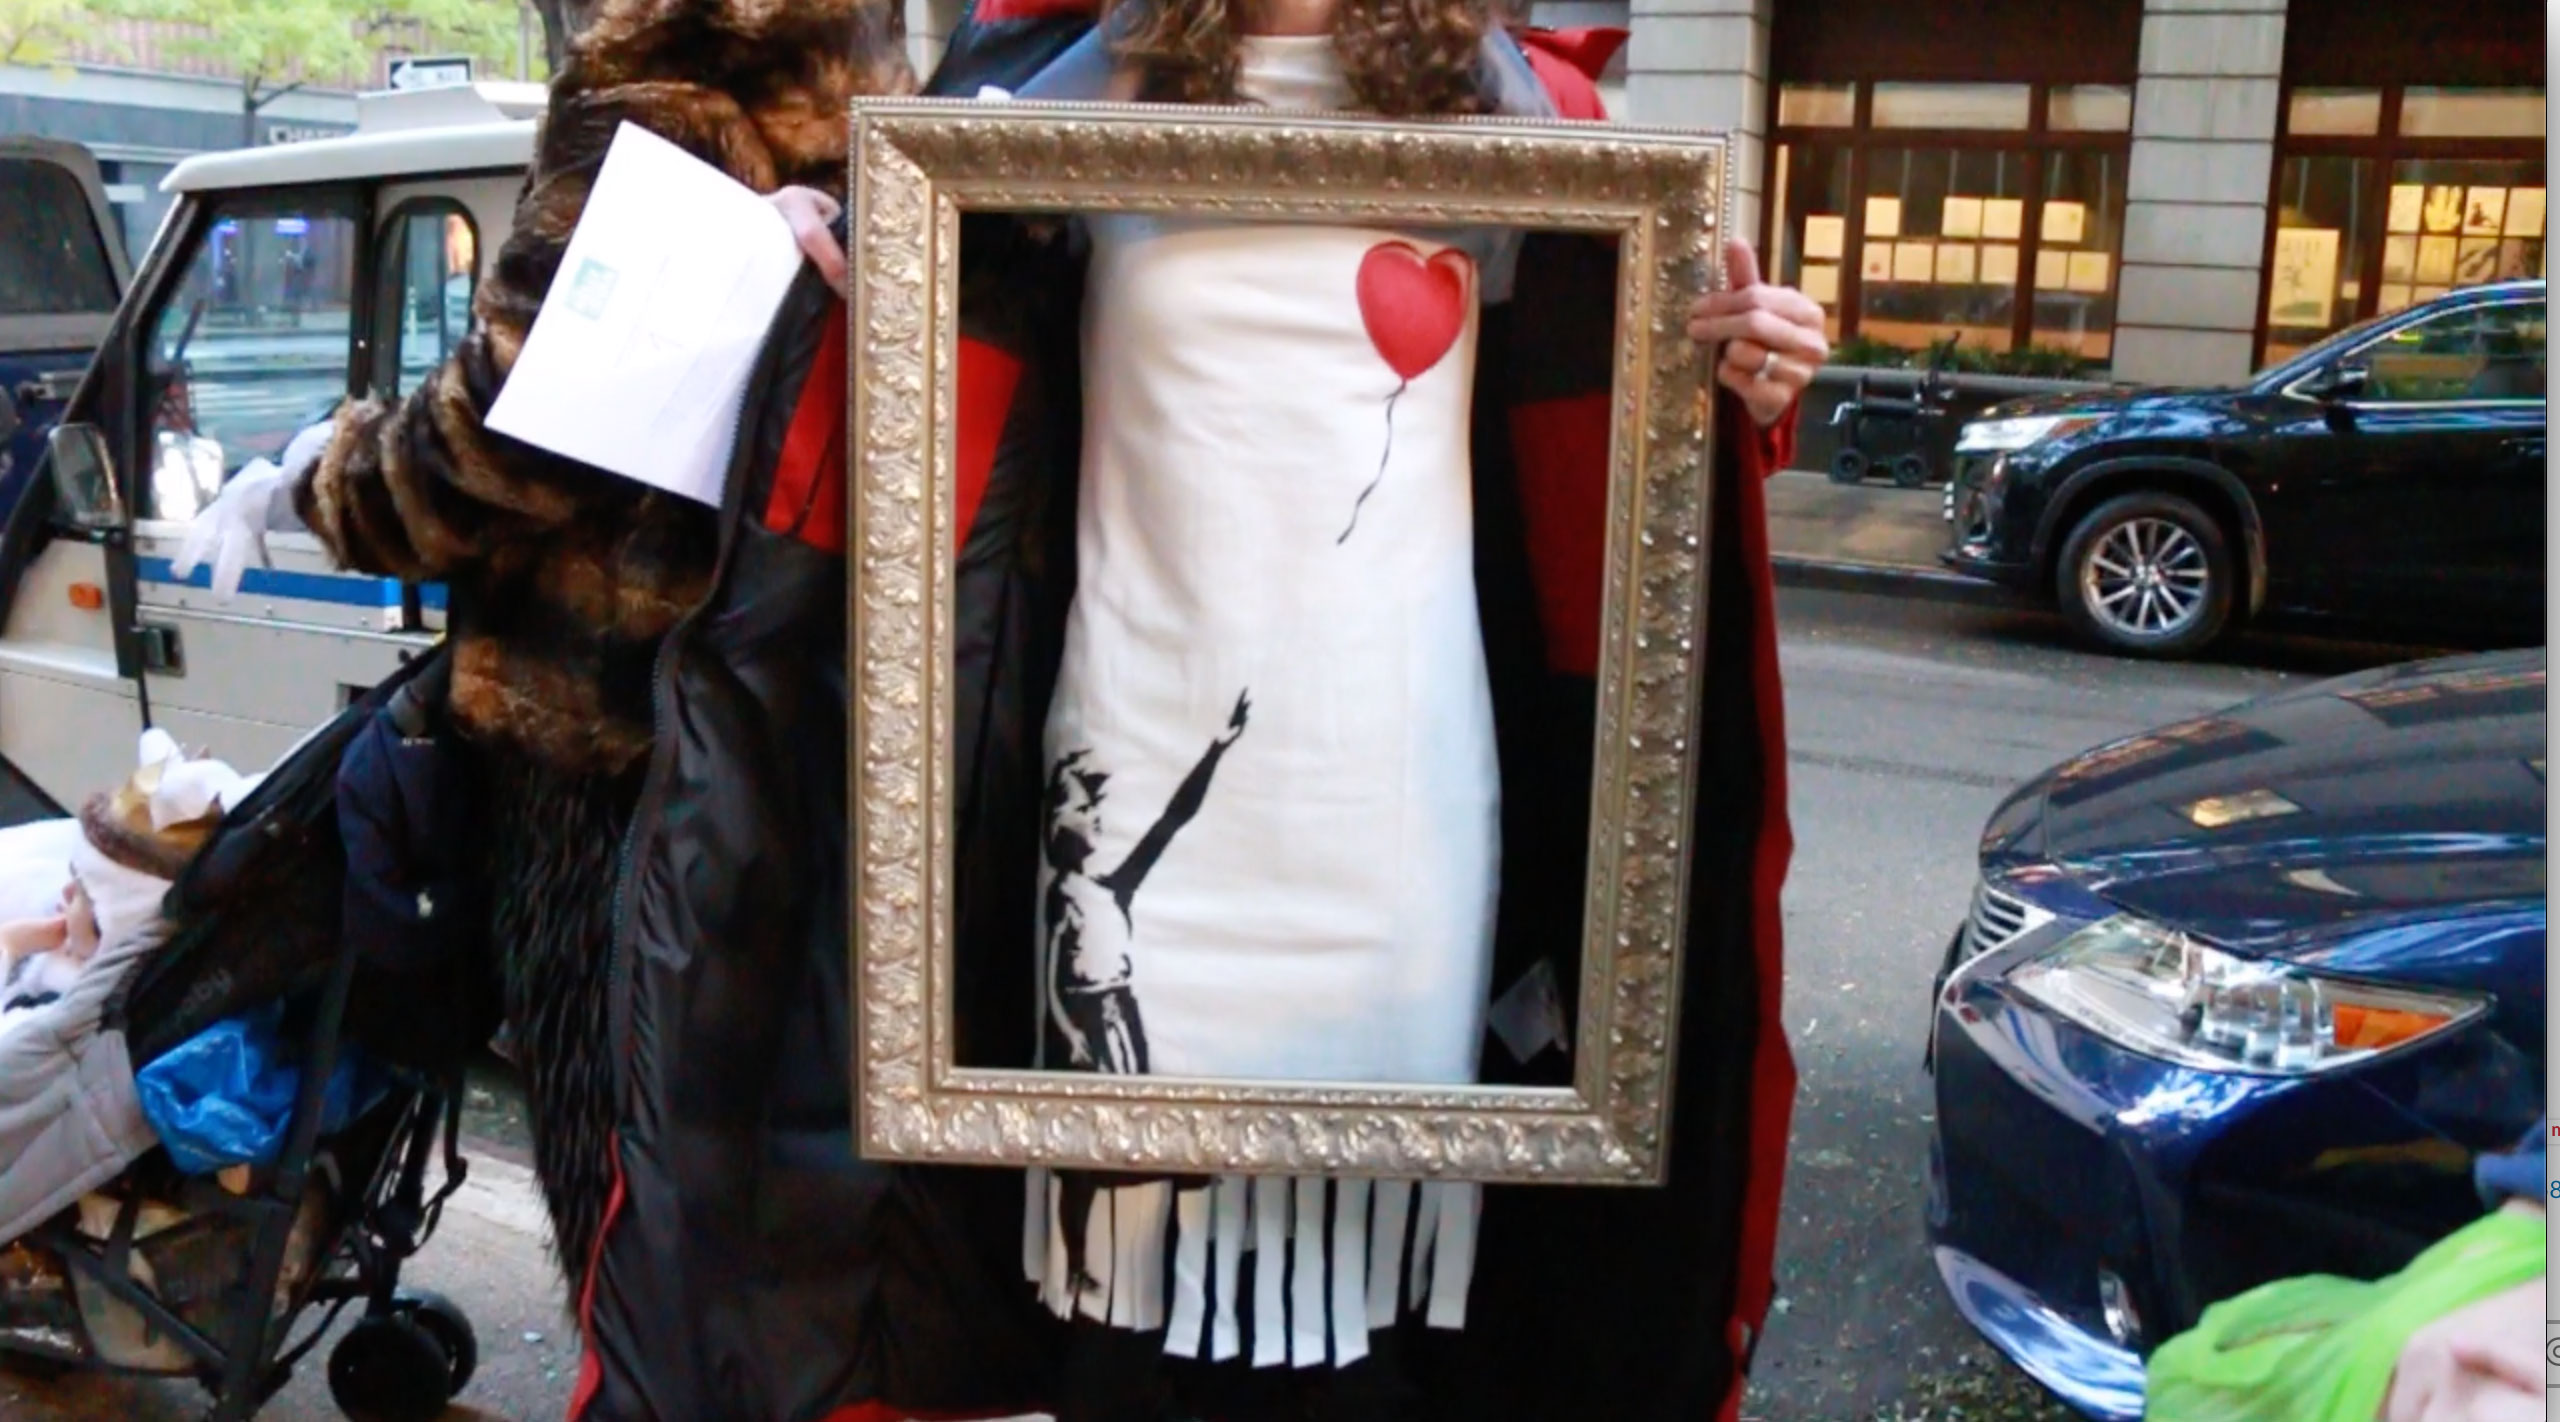 <div class='meta'><div class='origin-logo' data-origin='none'></div><span class='caption-text' data-credit=''>One woman showed up dressed as the doomed artwork by Banksy that was shredded at an auction earlier this year.</span></div>